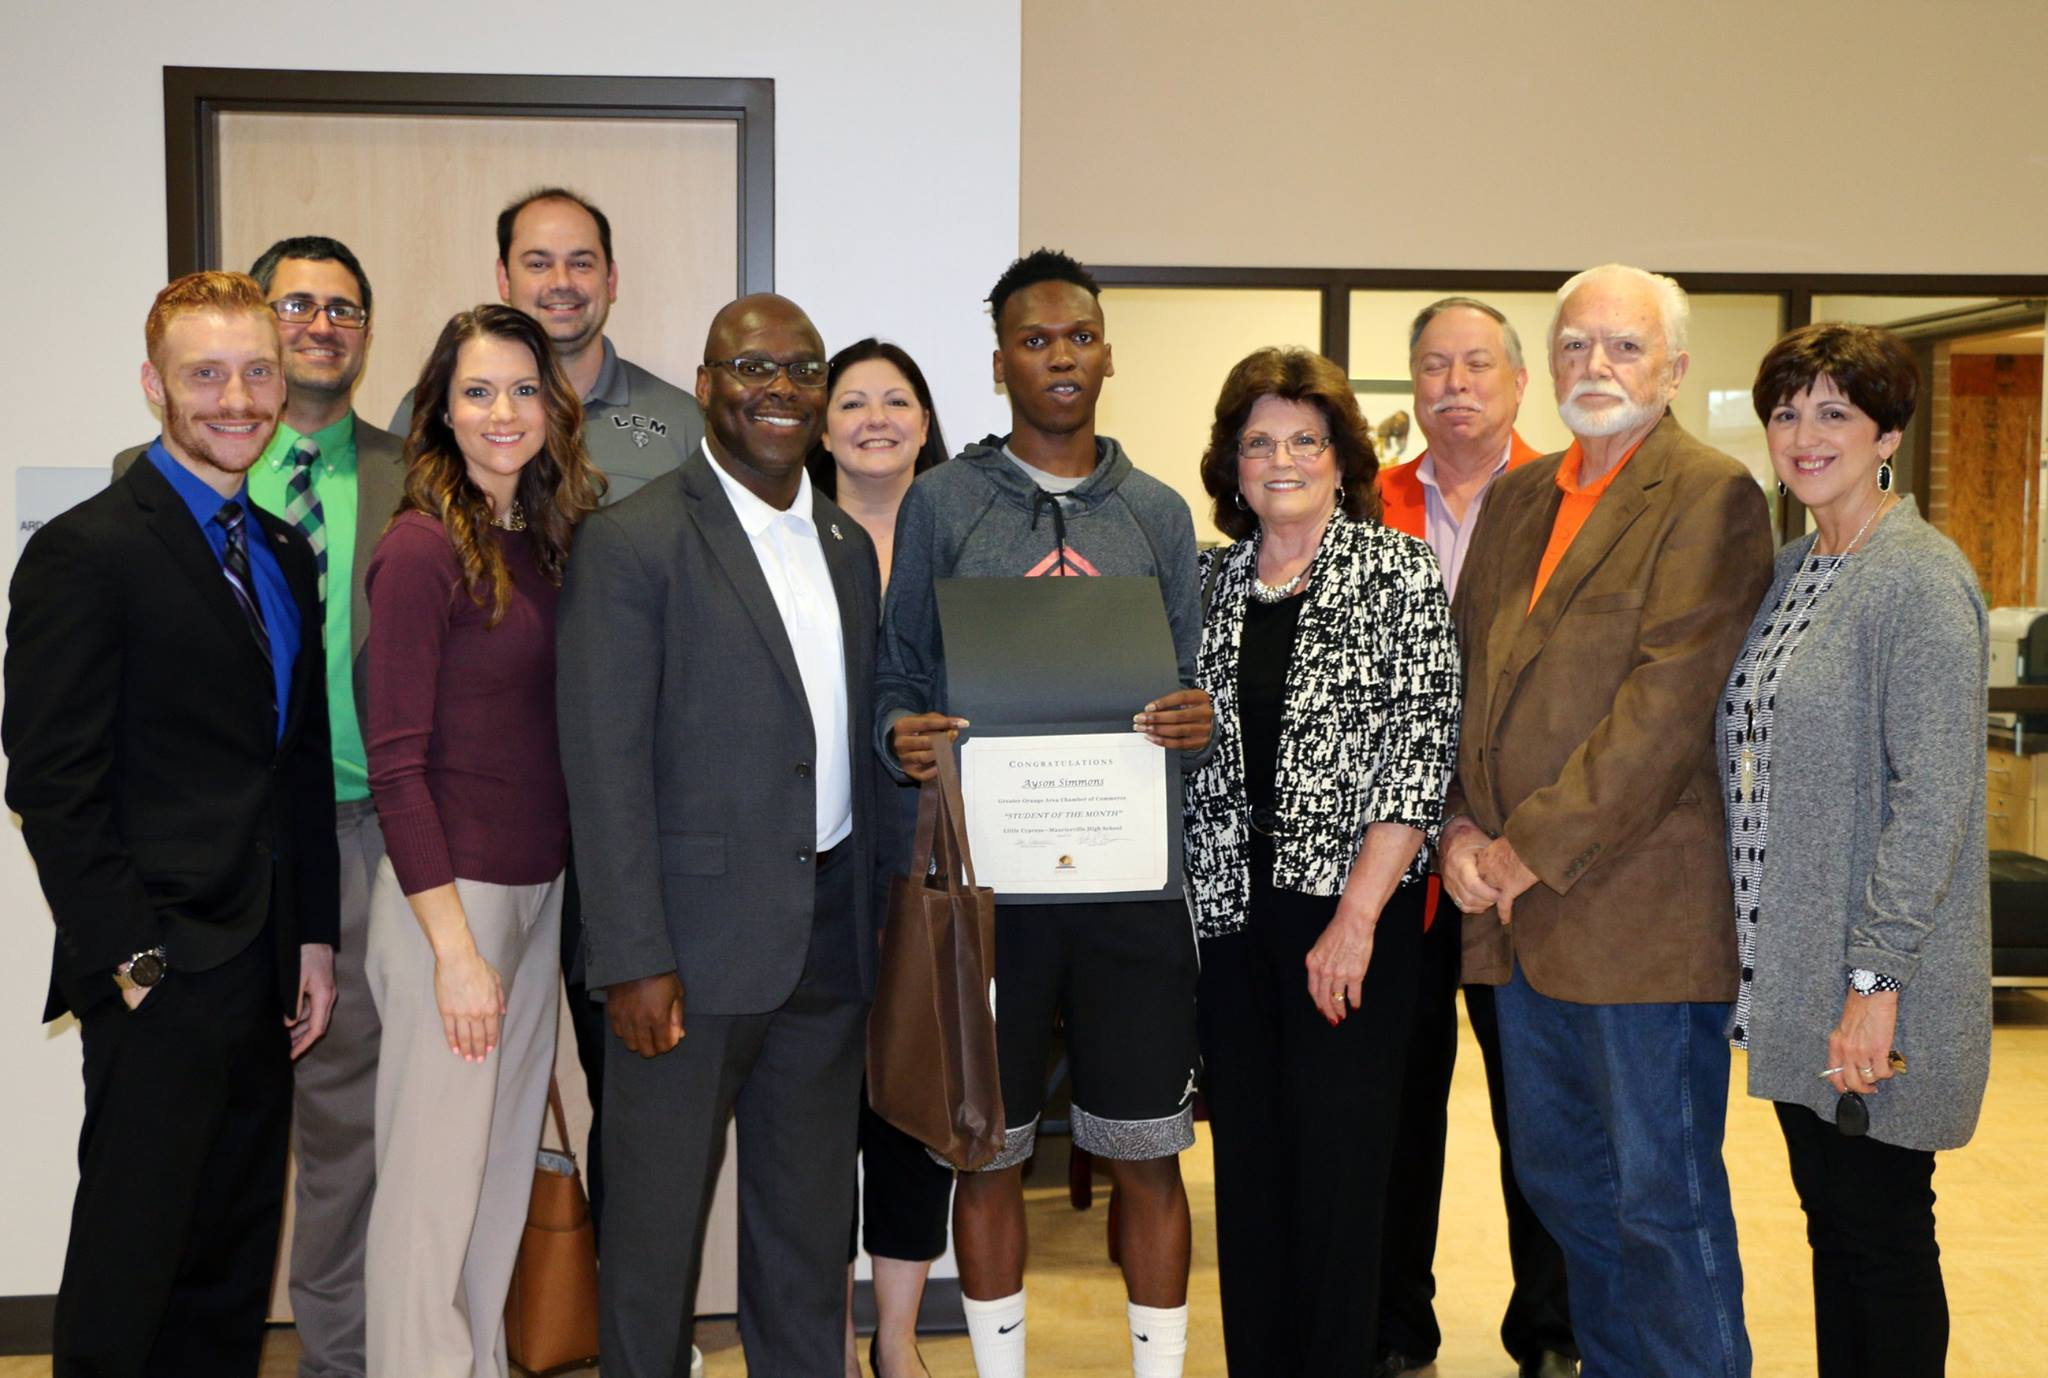 Ayson Simmons was awarded the Orange Chamber of Commerce Student of the Month.